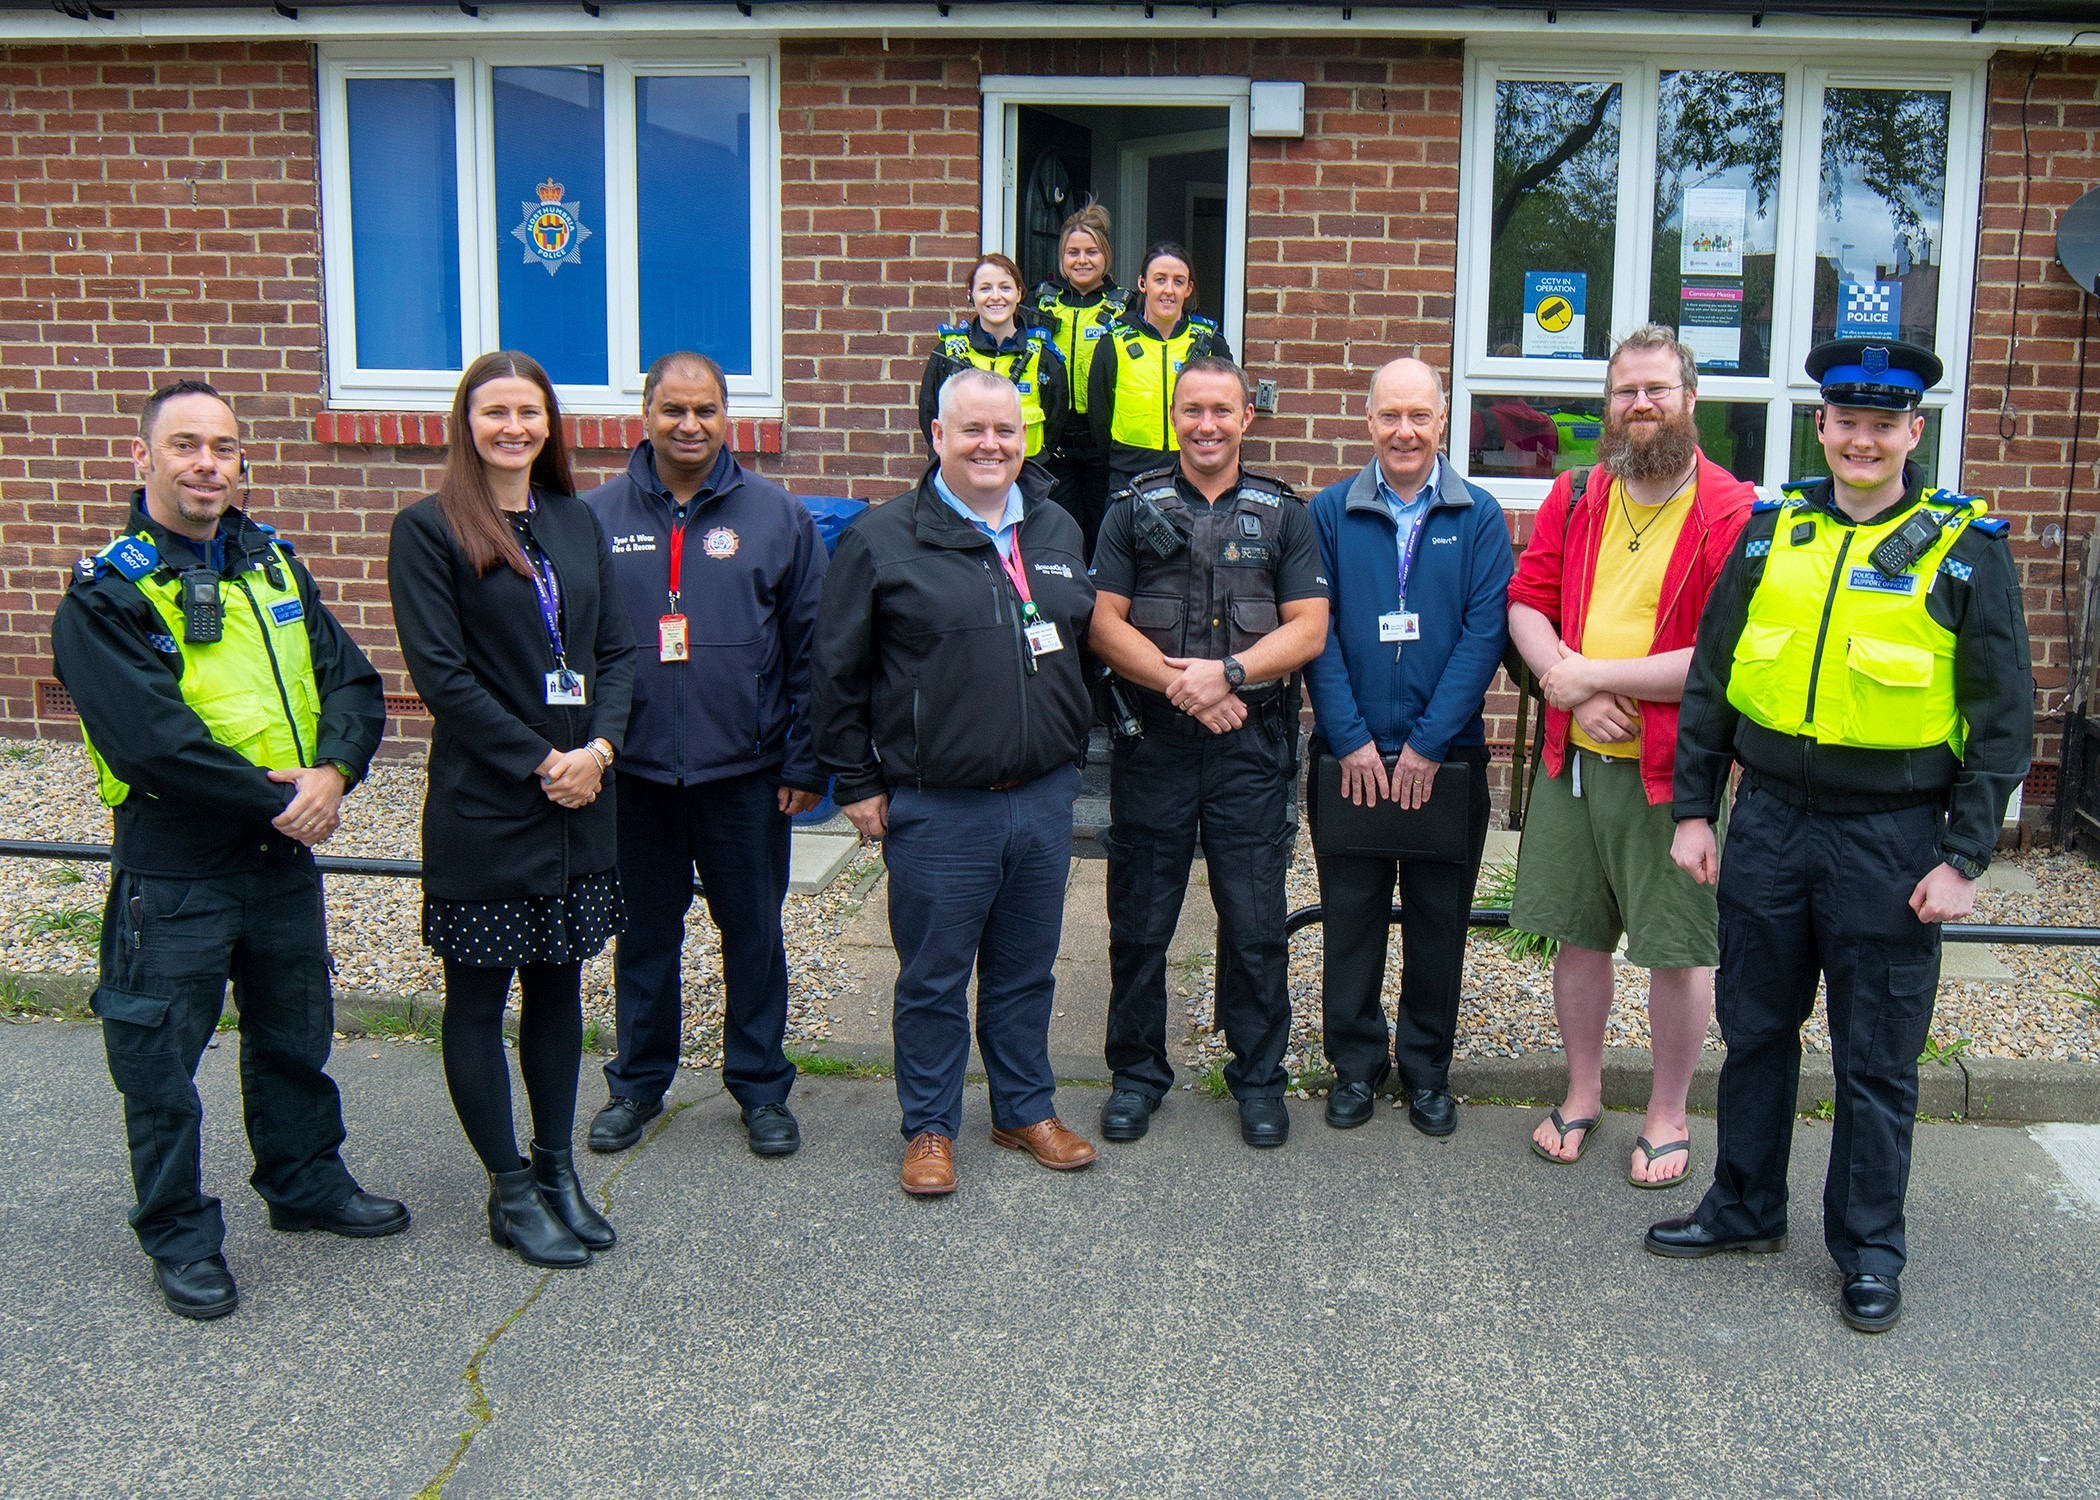 Left to right: Helen Rowley, area manager at Your Homes Newcastle, Mehrban Sadiq from Tyne and Wear Fire and Rescue Service, Darin Maudlin from Newcastle City Council and Sergeant Graham Yare, Peter Winship of Your Homes Newcastle and local councillor Osk